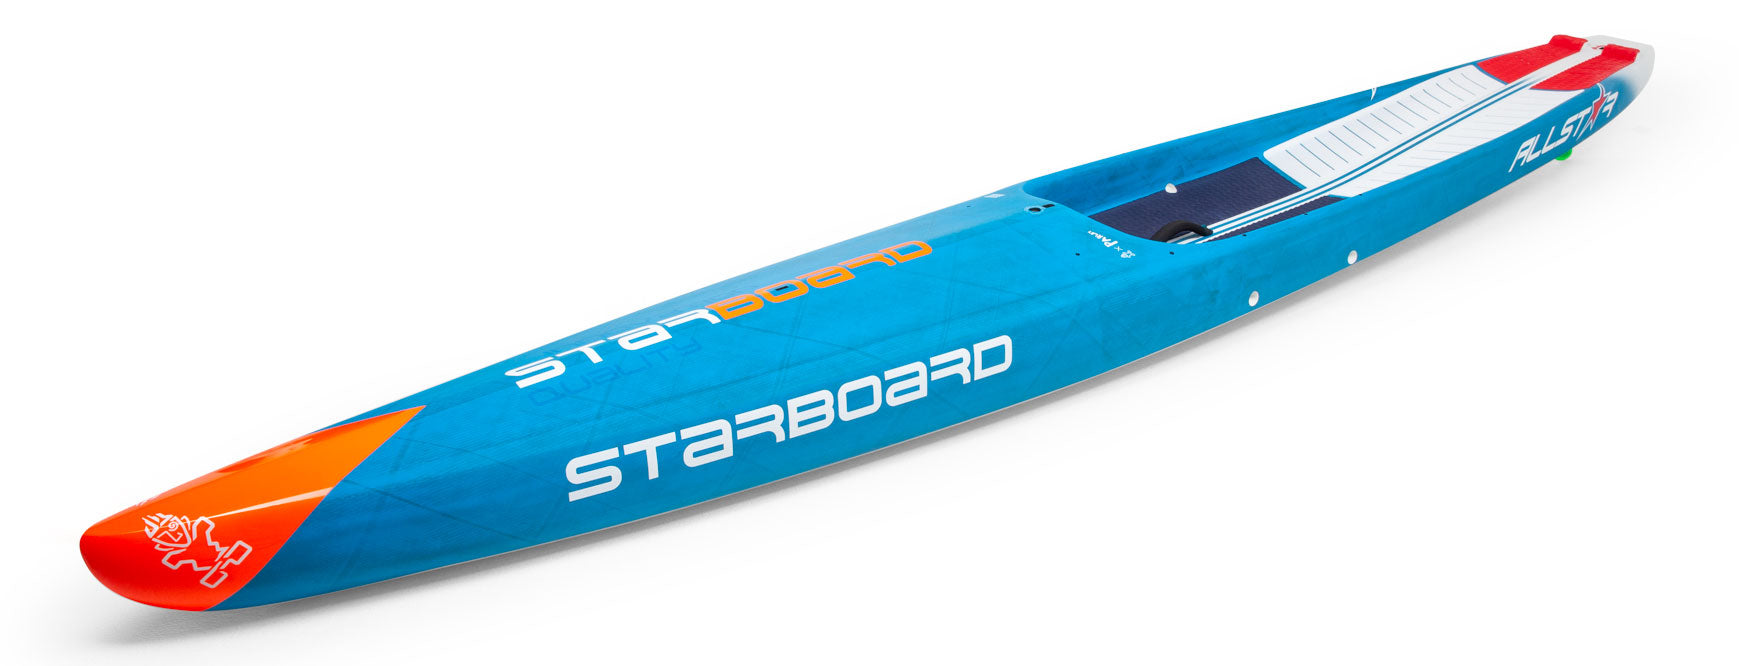 2022 starboard all star 14' side view